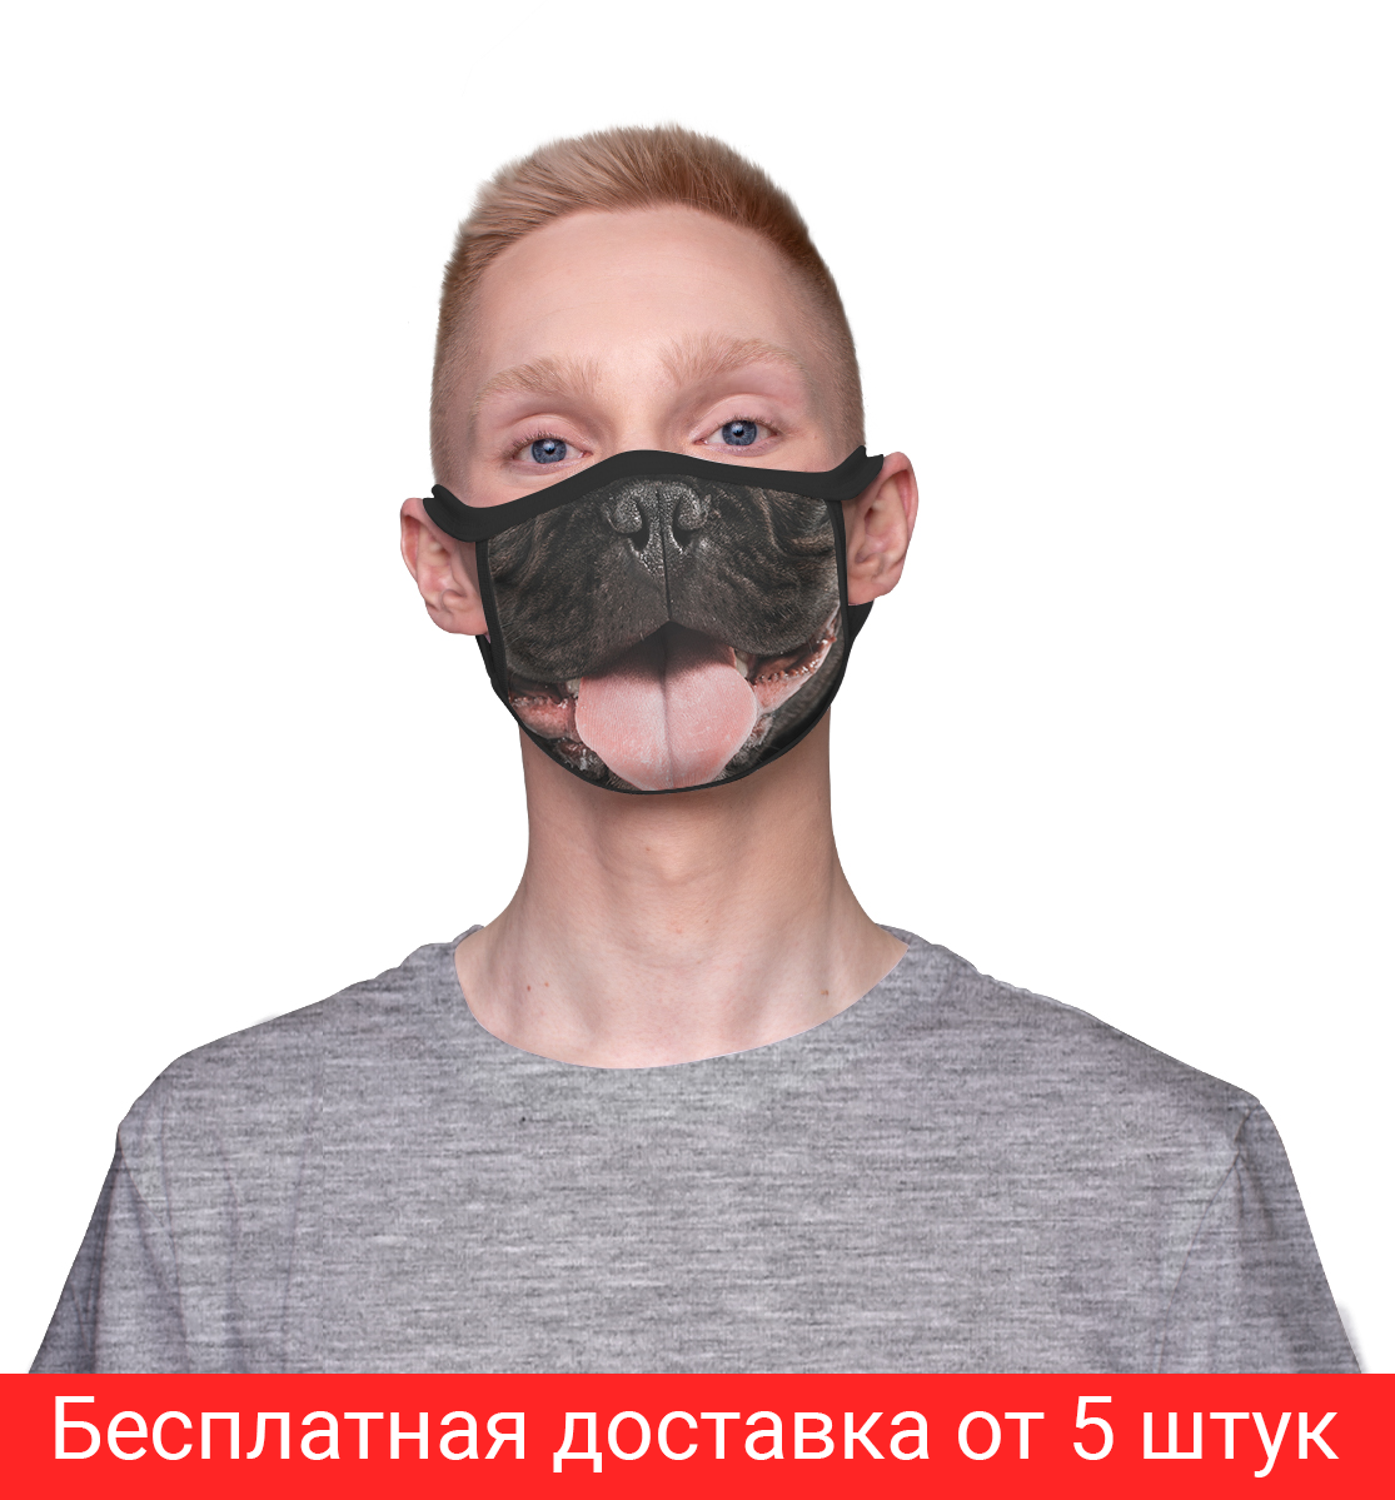 Mask Protective Cloth Dog, Stylish Trend Cool Accessory, Anti Dust And Viruses, Mask With Print